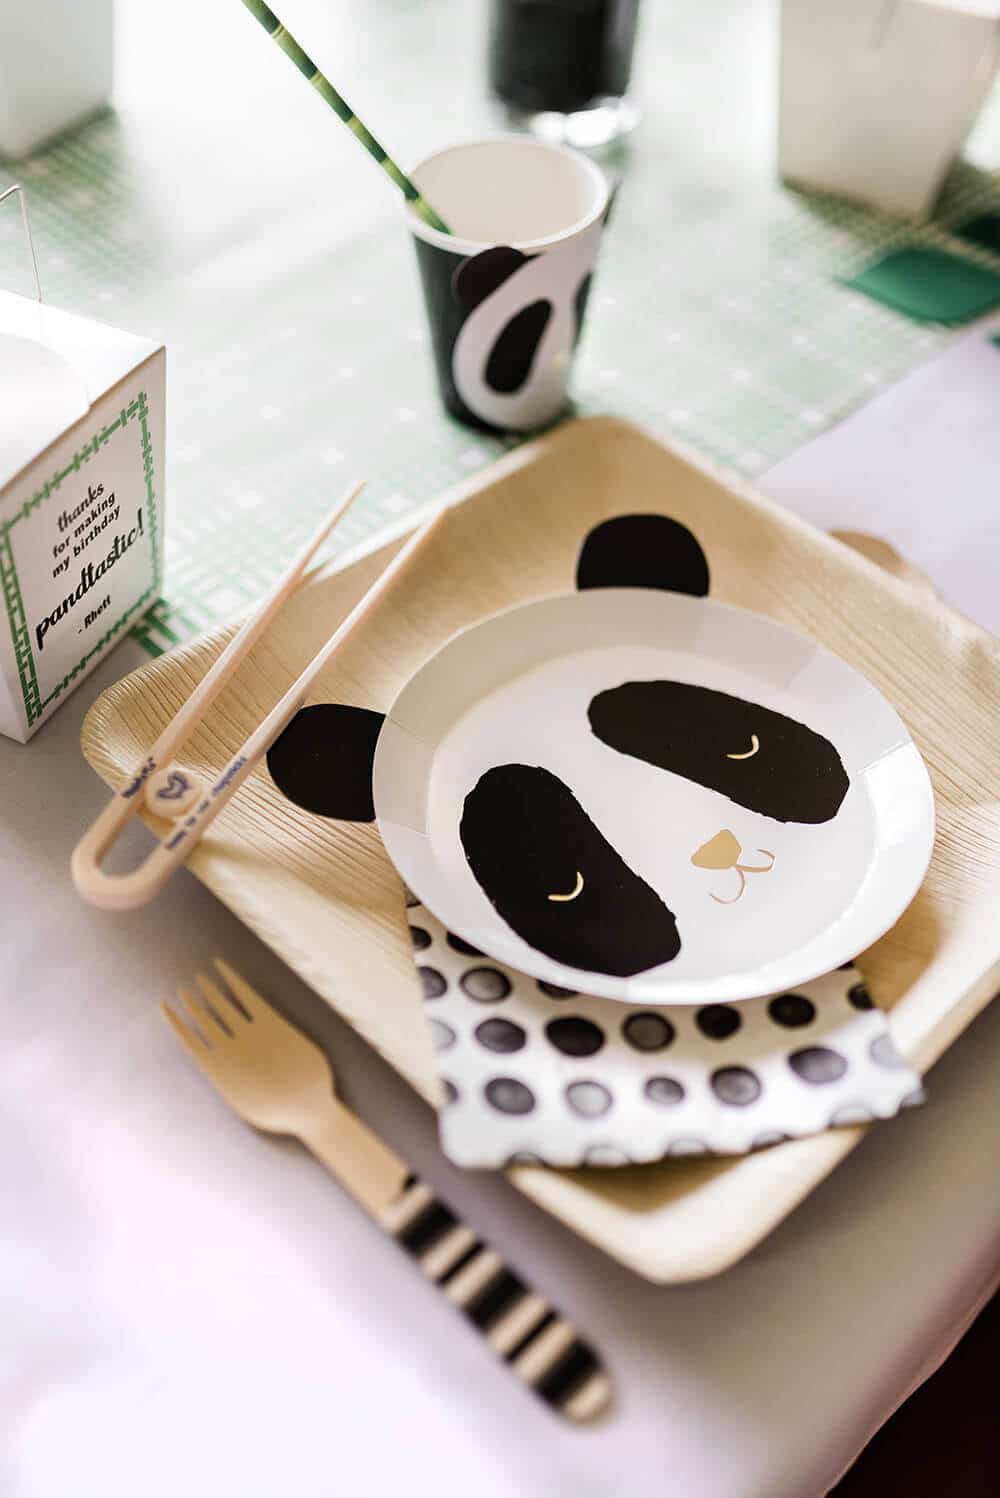 Party Like a Panda with panda plates, cups, chopsticks, and take out boxes